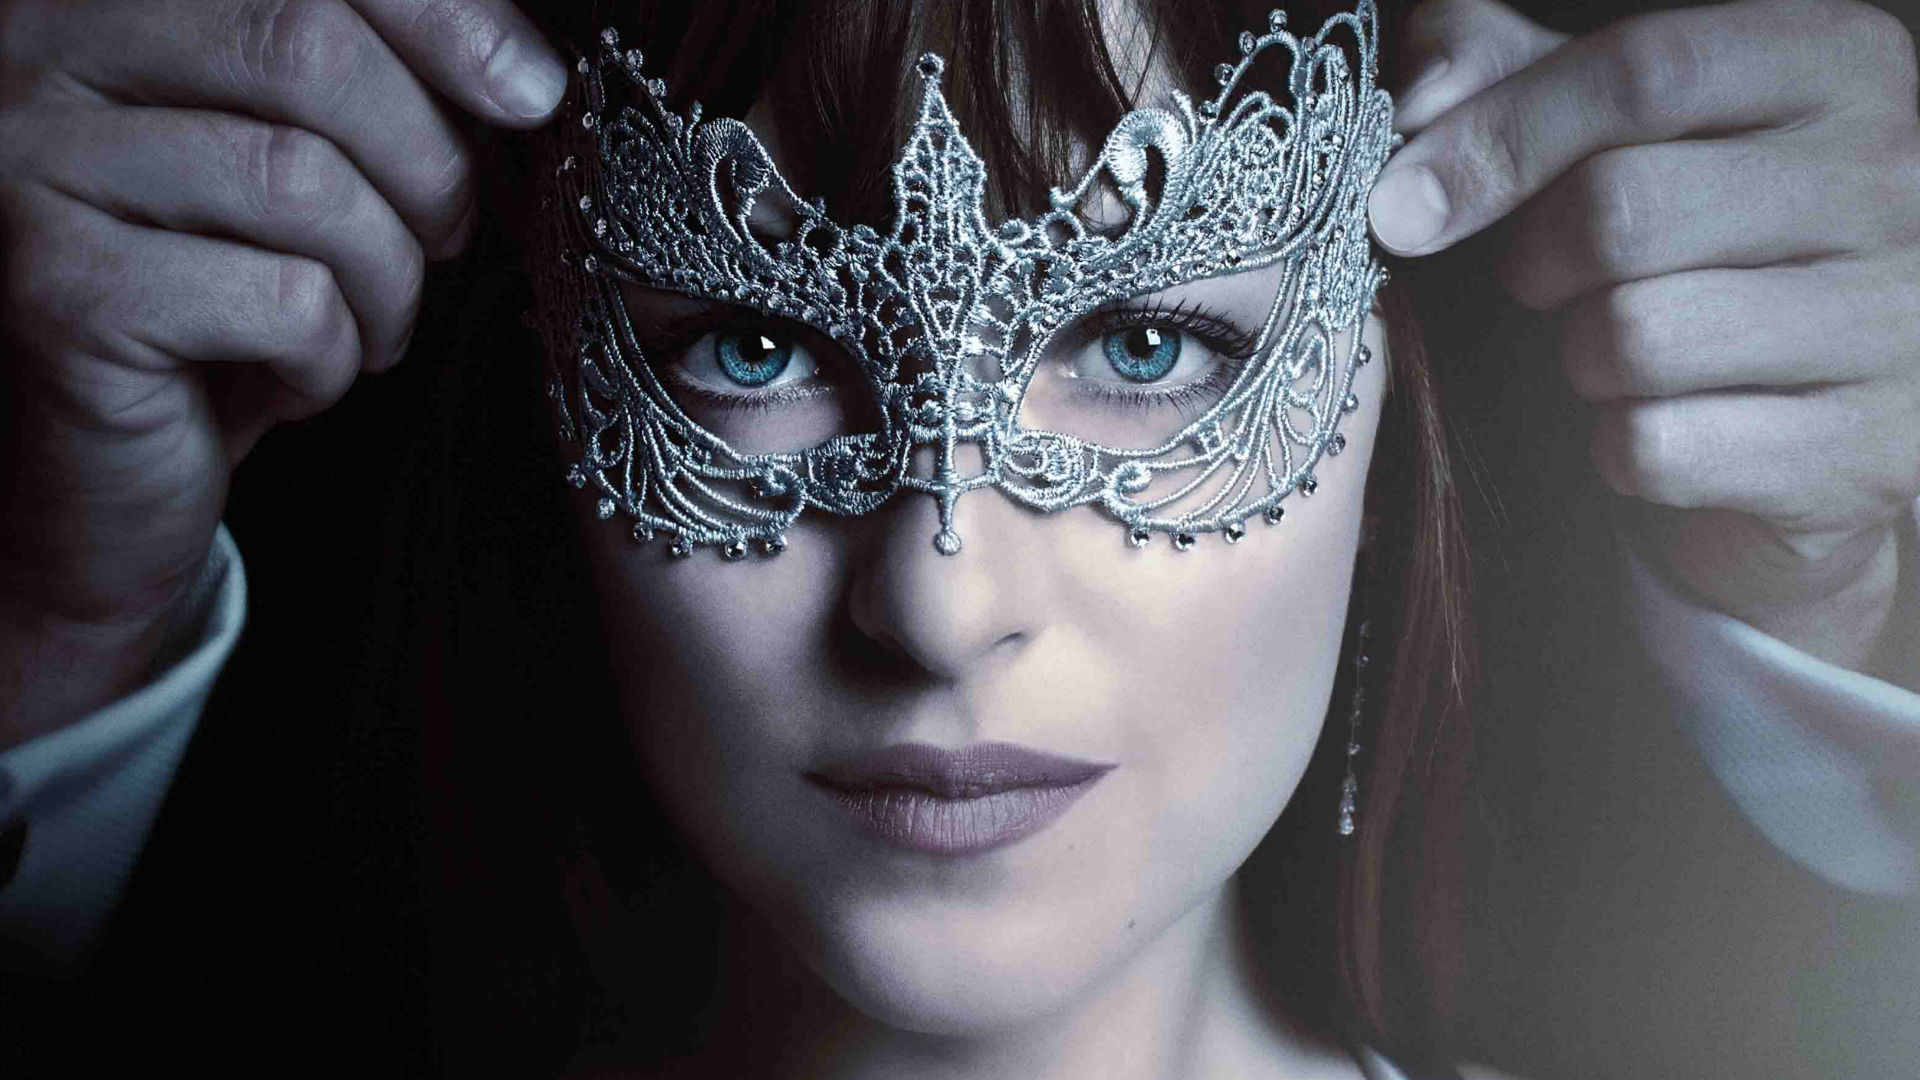 Dakota Johnson in Fifty Shades Darker